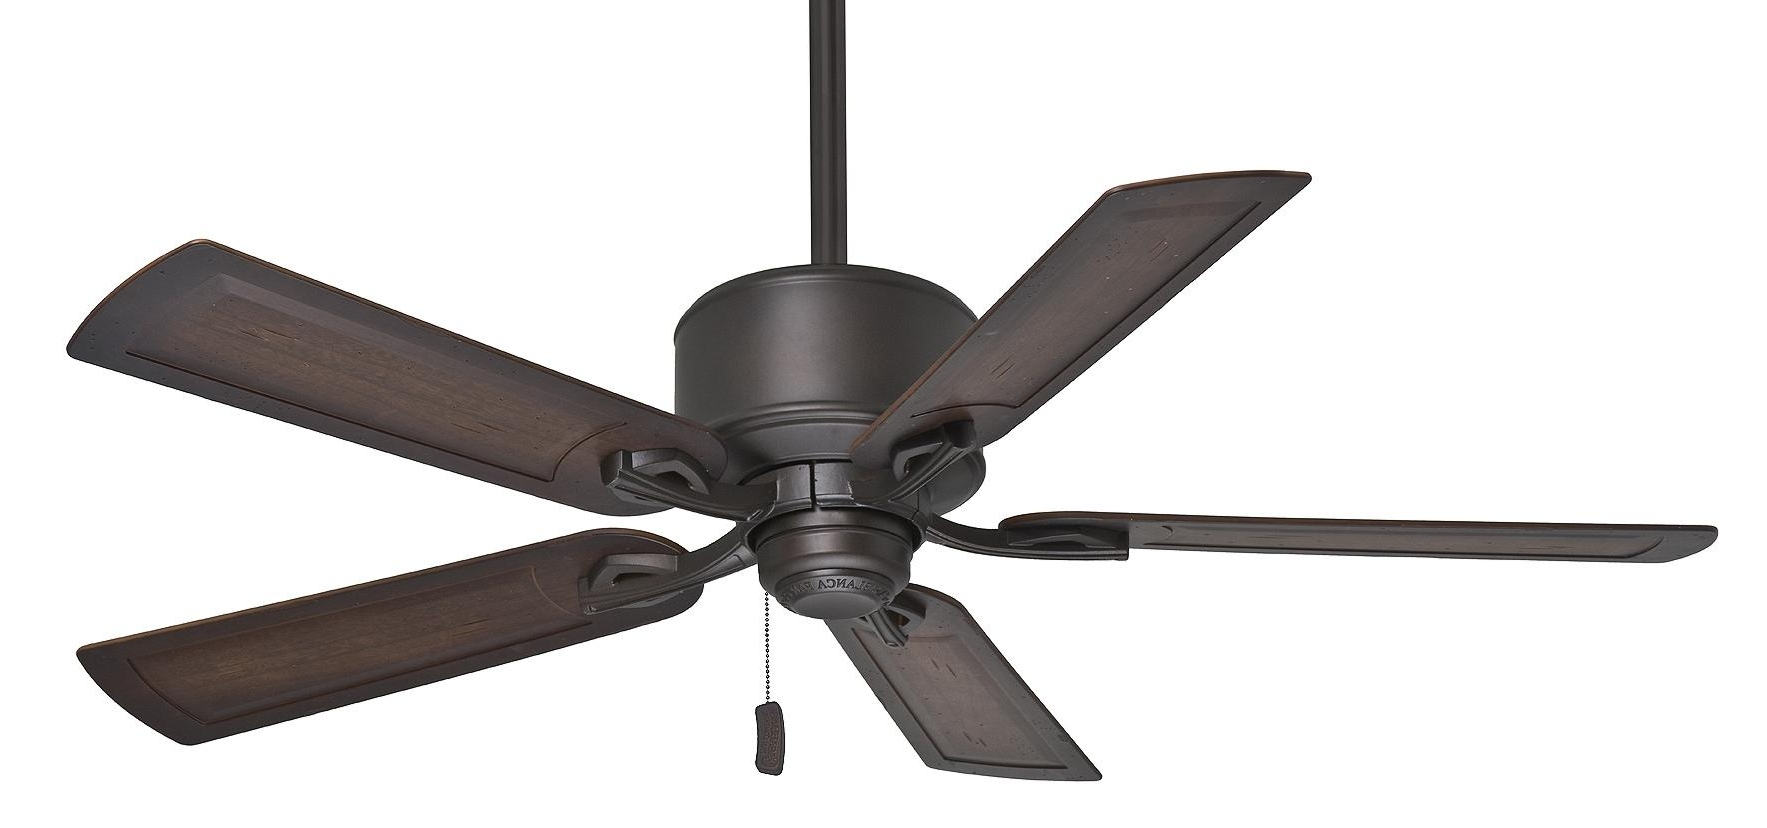 Ceiling: Astounding Casablanca Ceiling Fans Casablanca Ceiling Fan Pertaining To Most Up To Date Casablanca Outdoor Ceiling Fans With Lights (View 11 of 20)